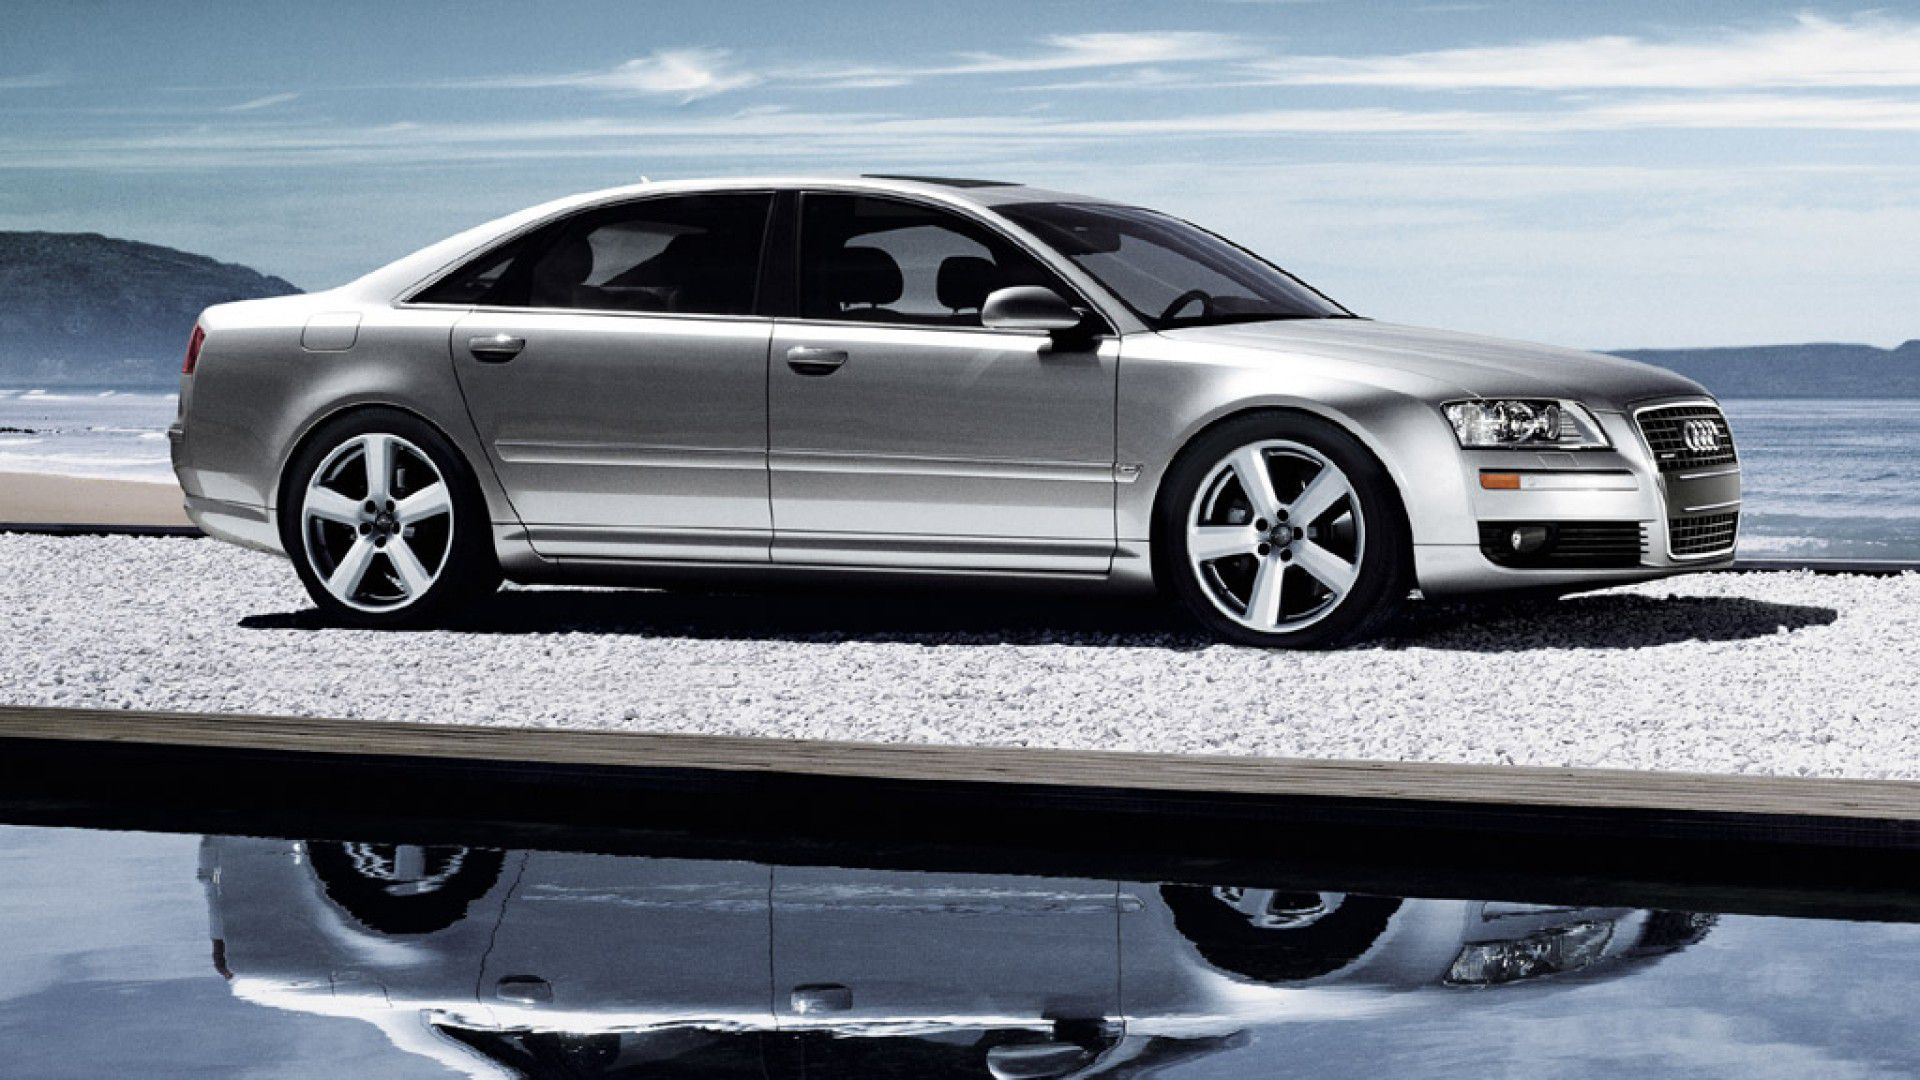 Audi S8 (2006 to 2010)